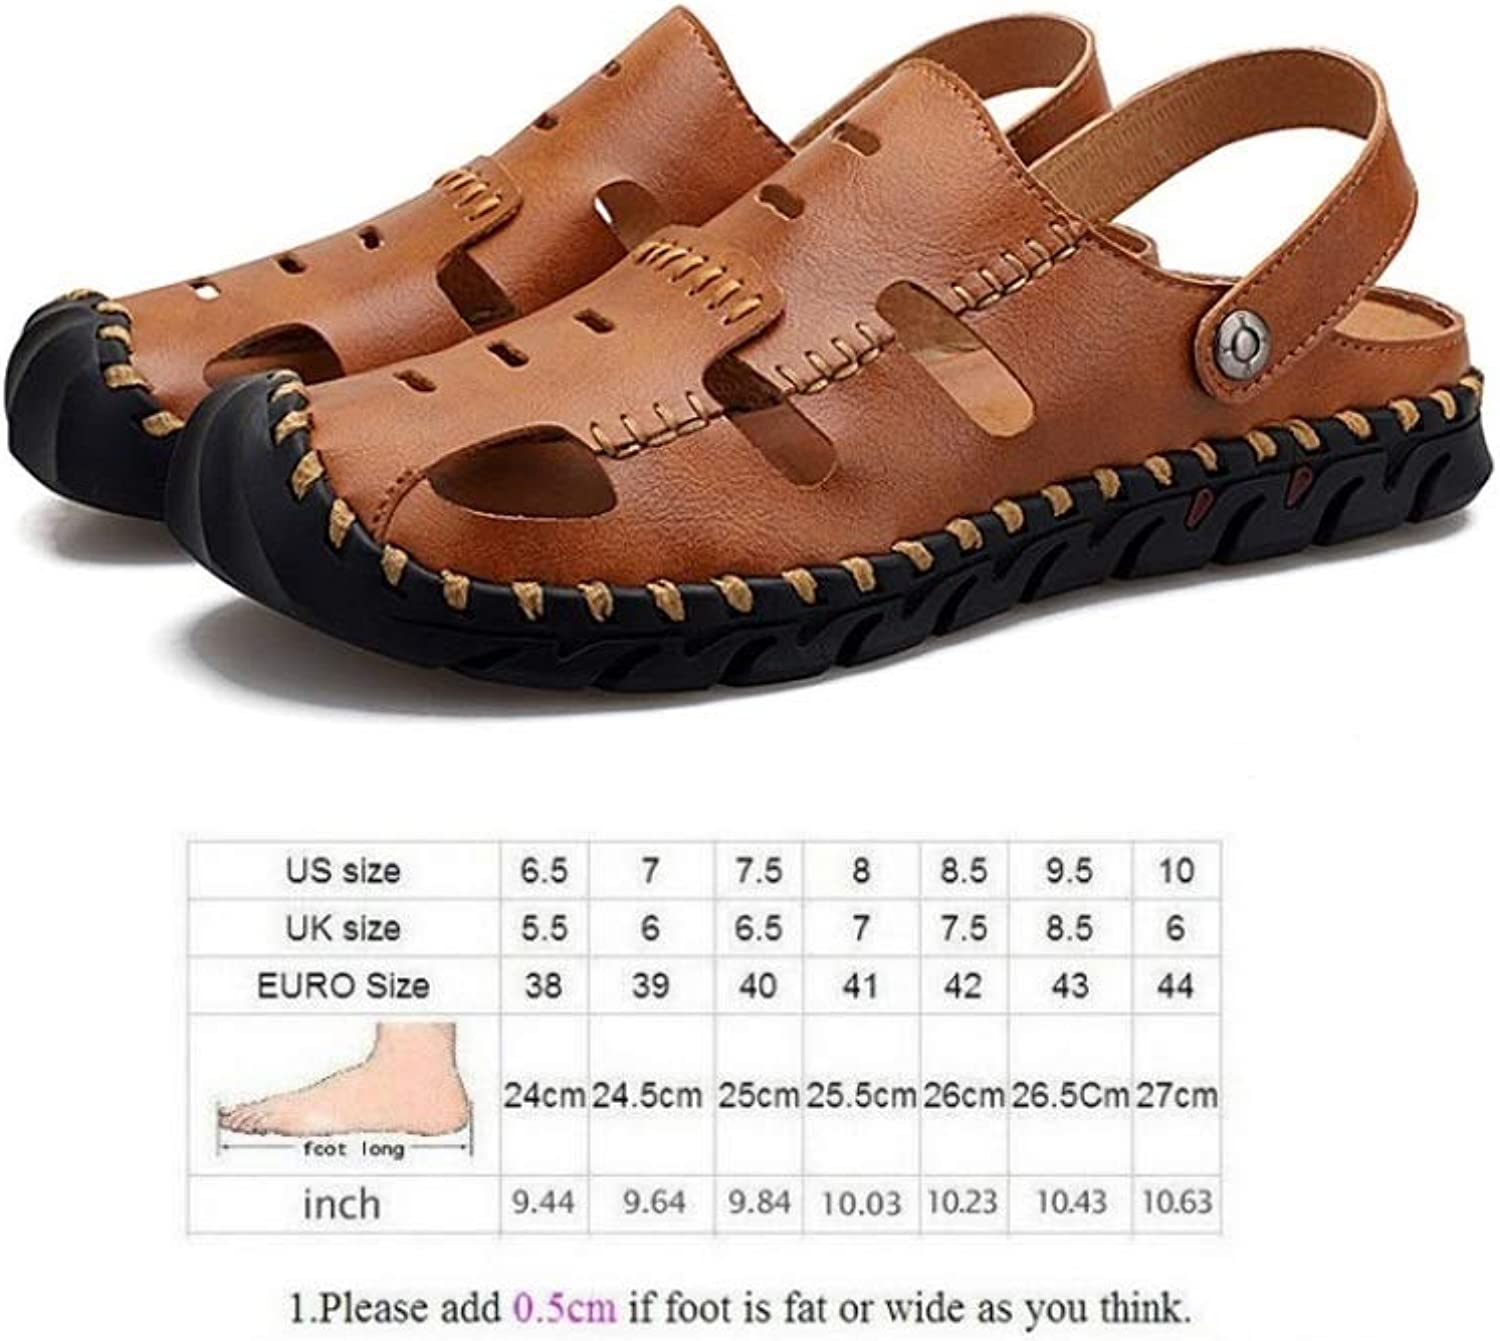 LZK Men's Sandals - Summer Leather Sandals, Casual Large Size Beach shoes, Baotou Anti-Collision Toe, Two Ways to wear B   44